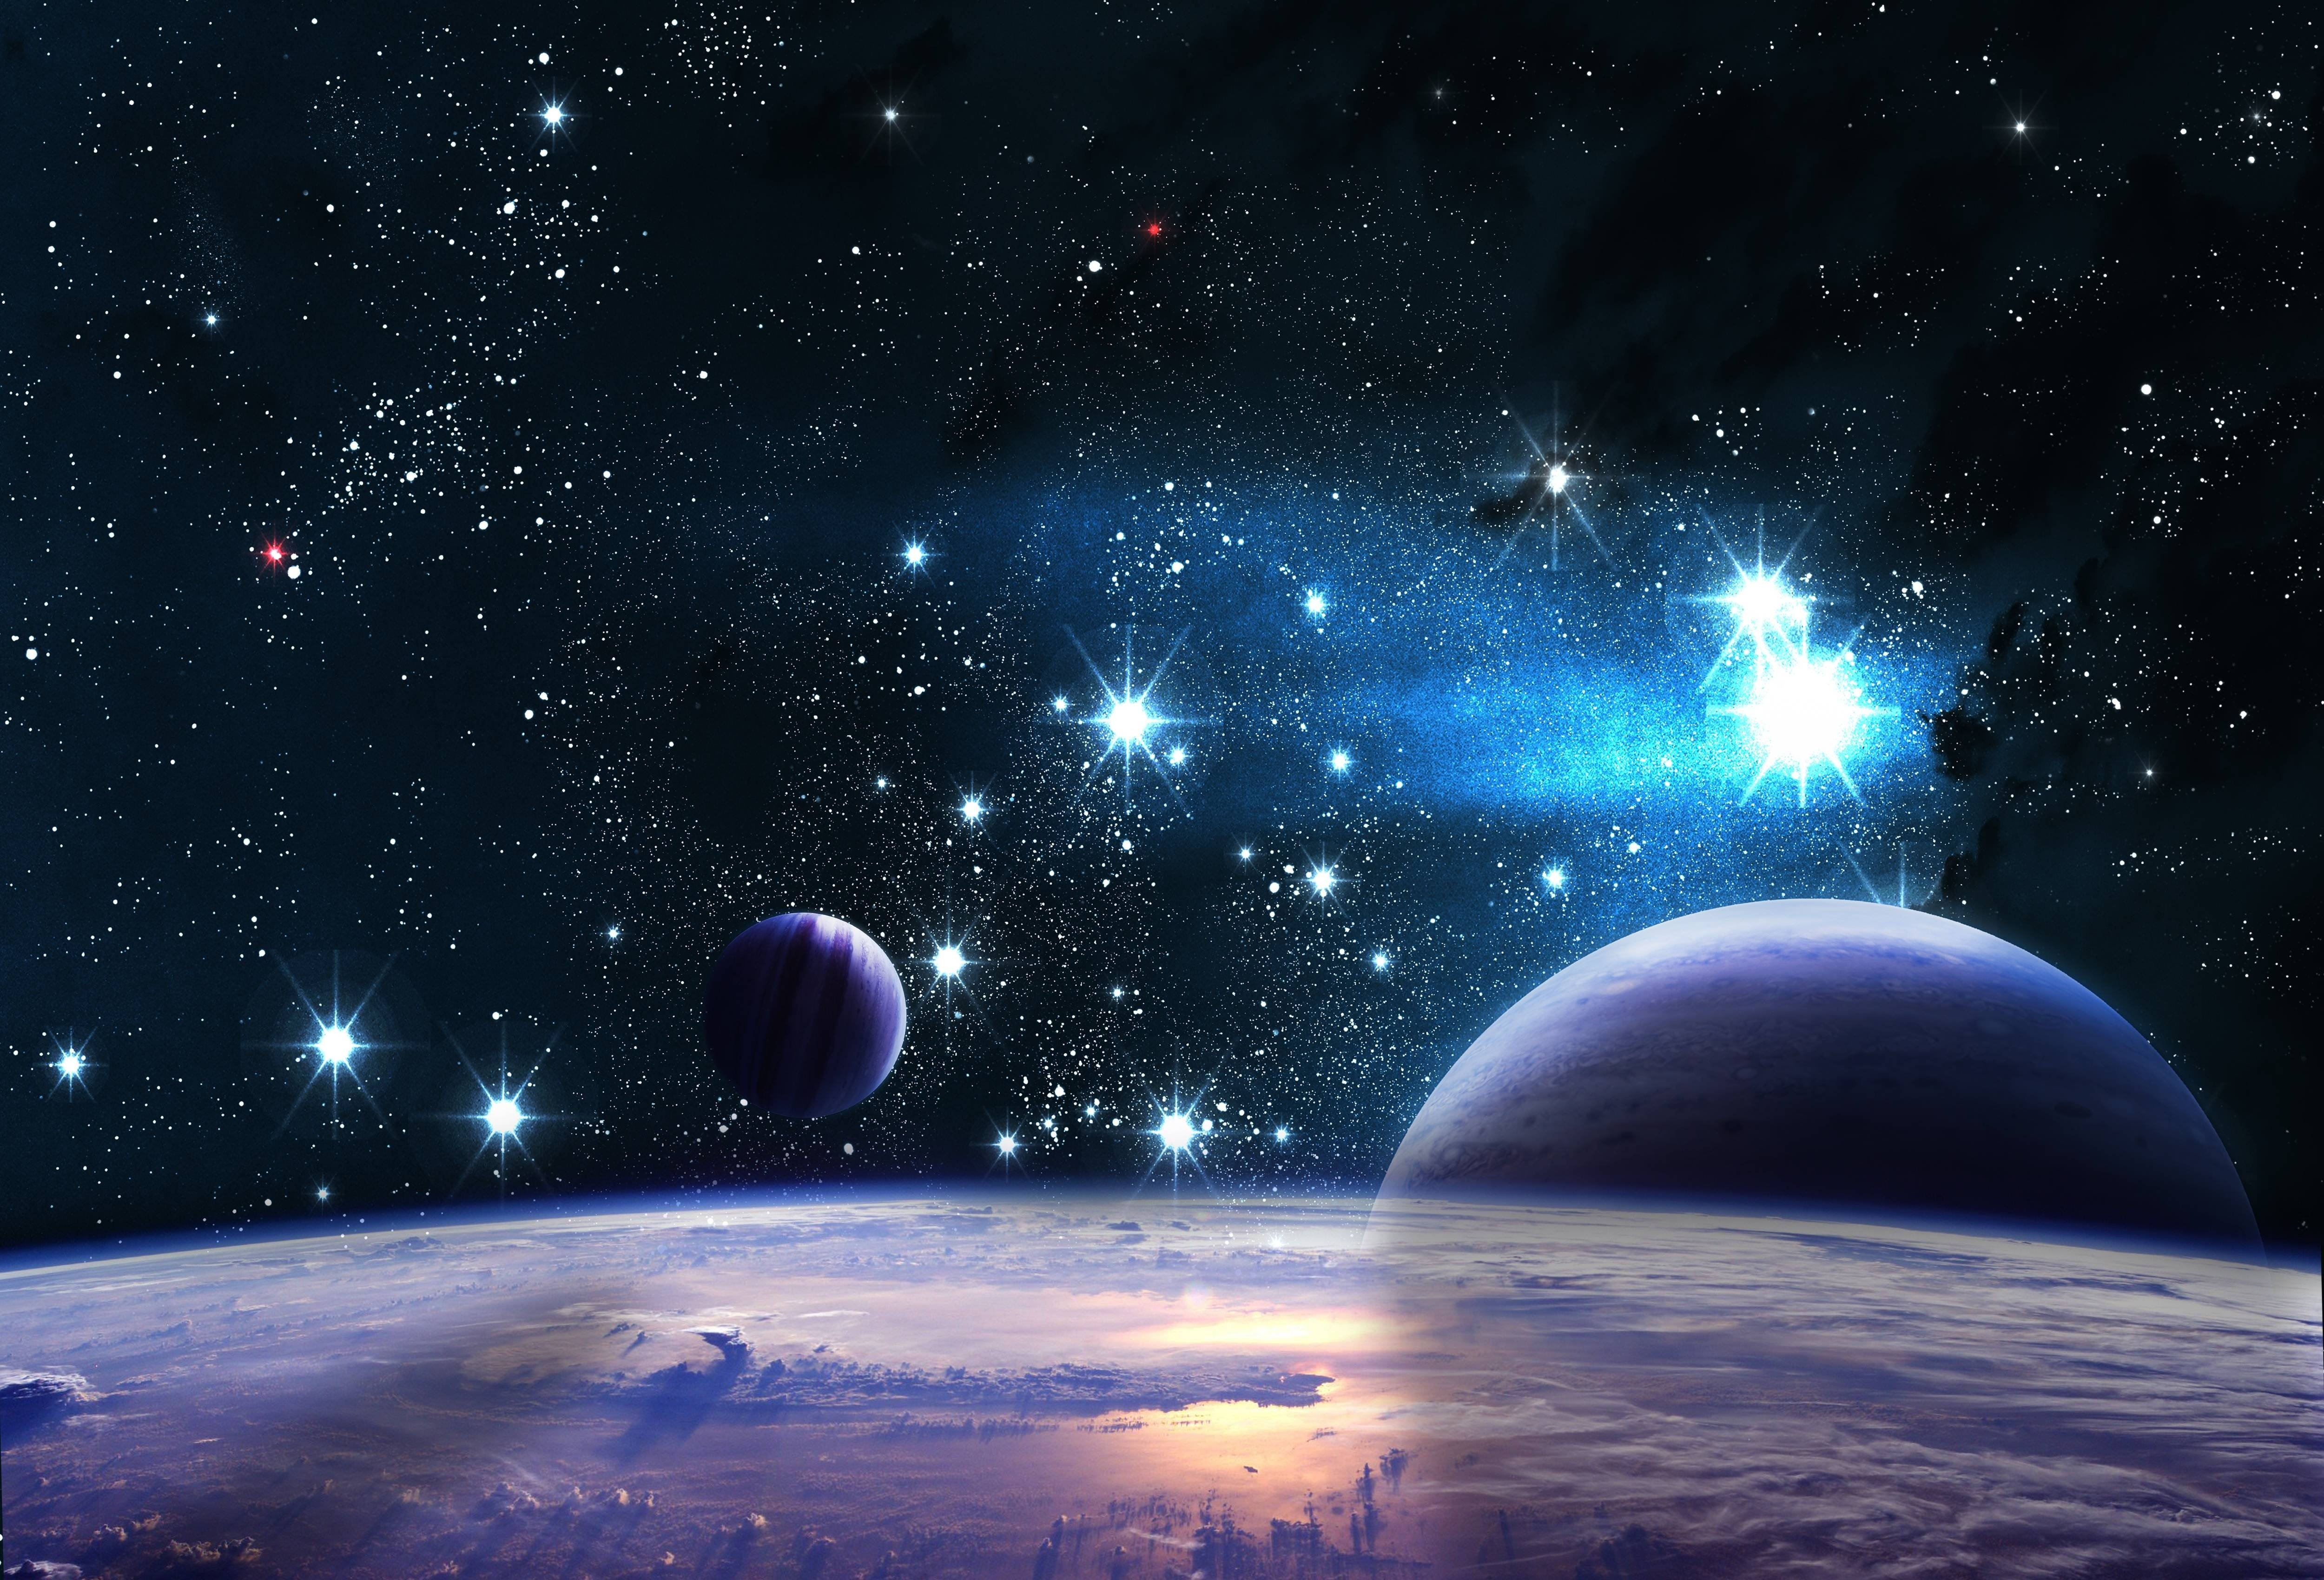 space planets images - photo #36